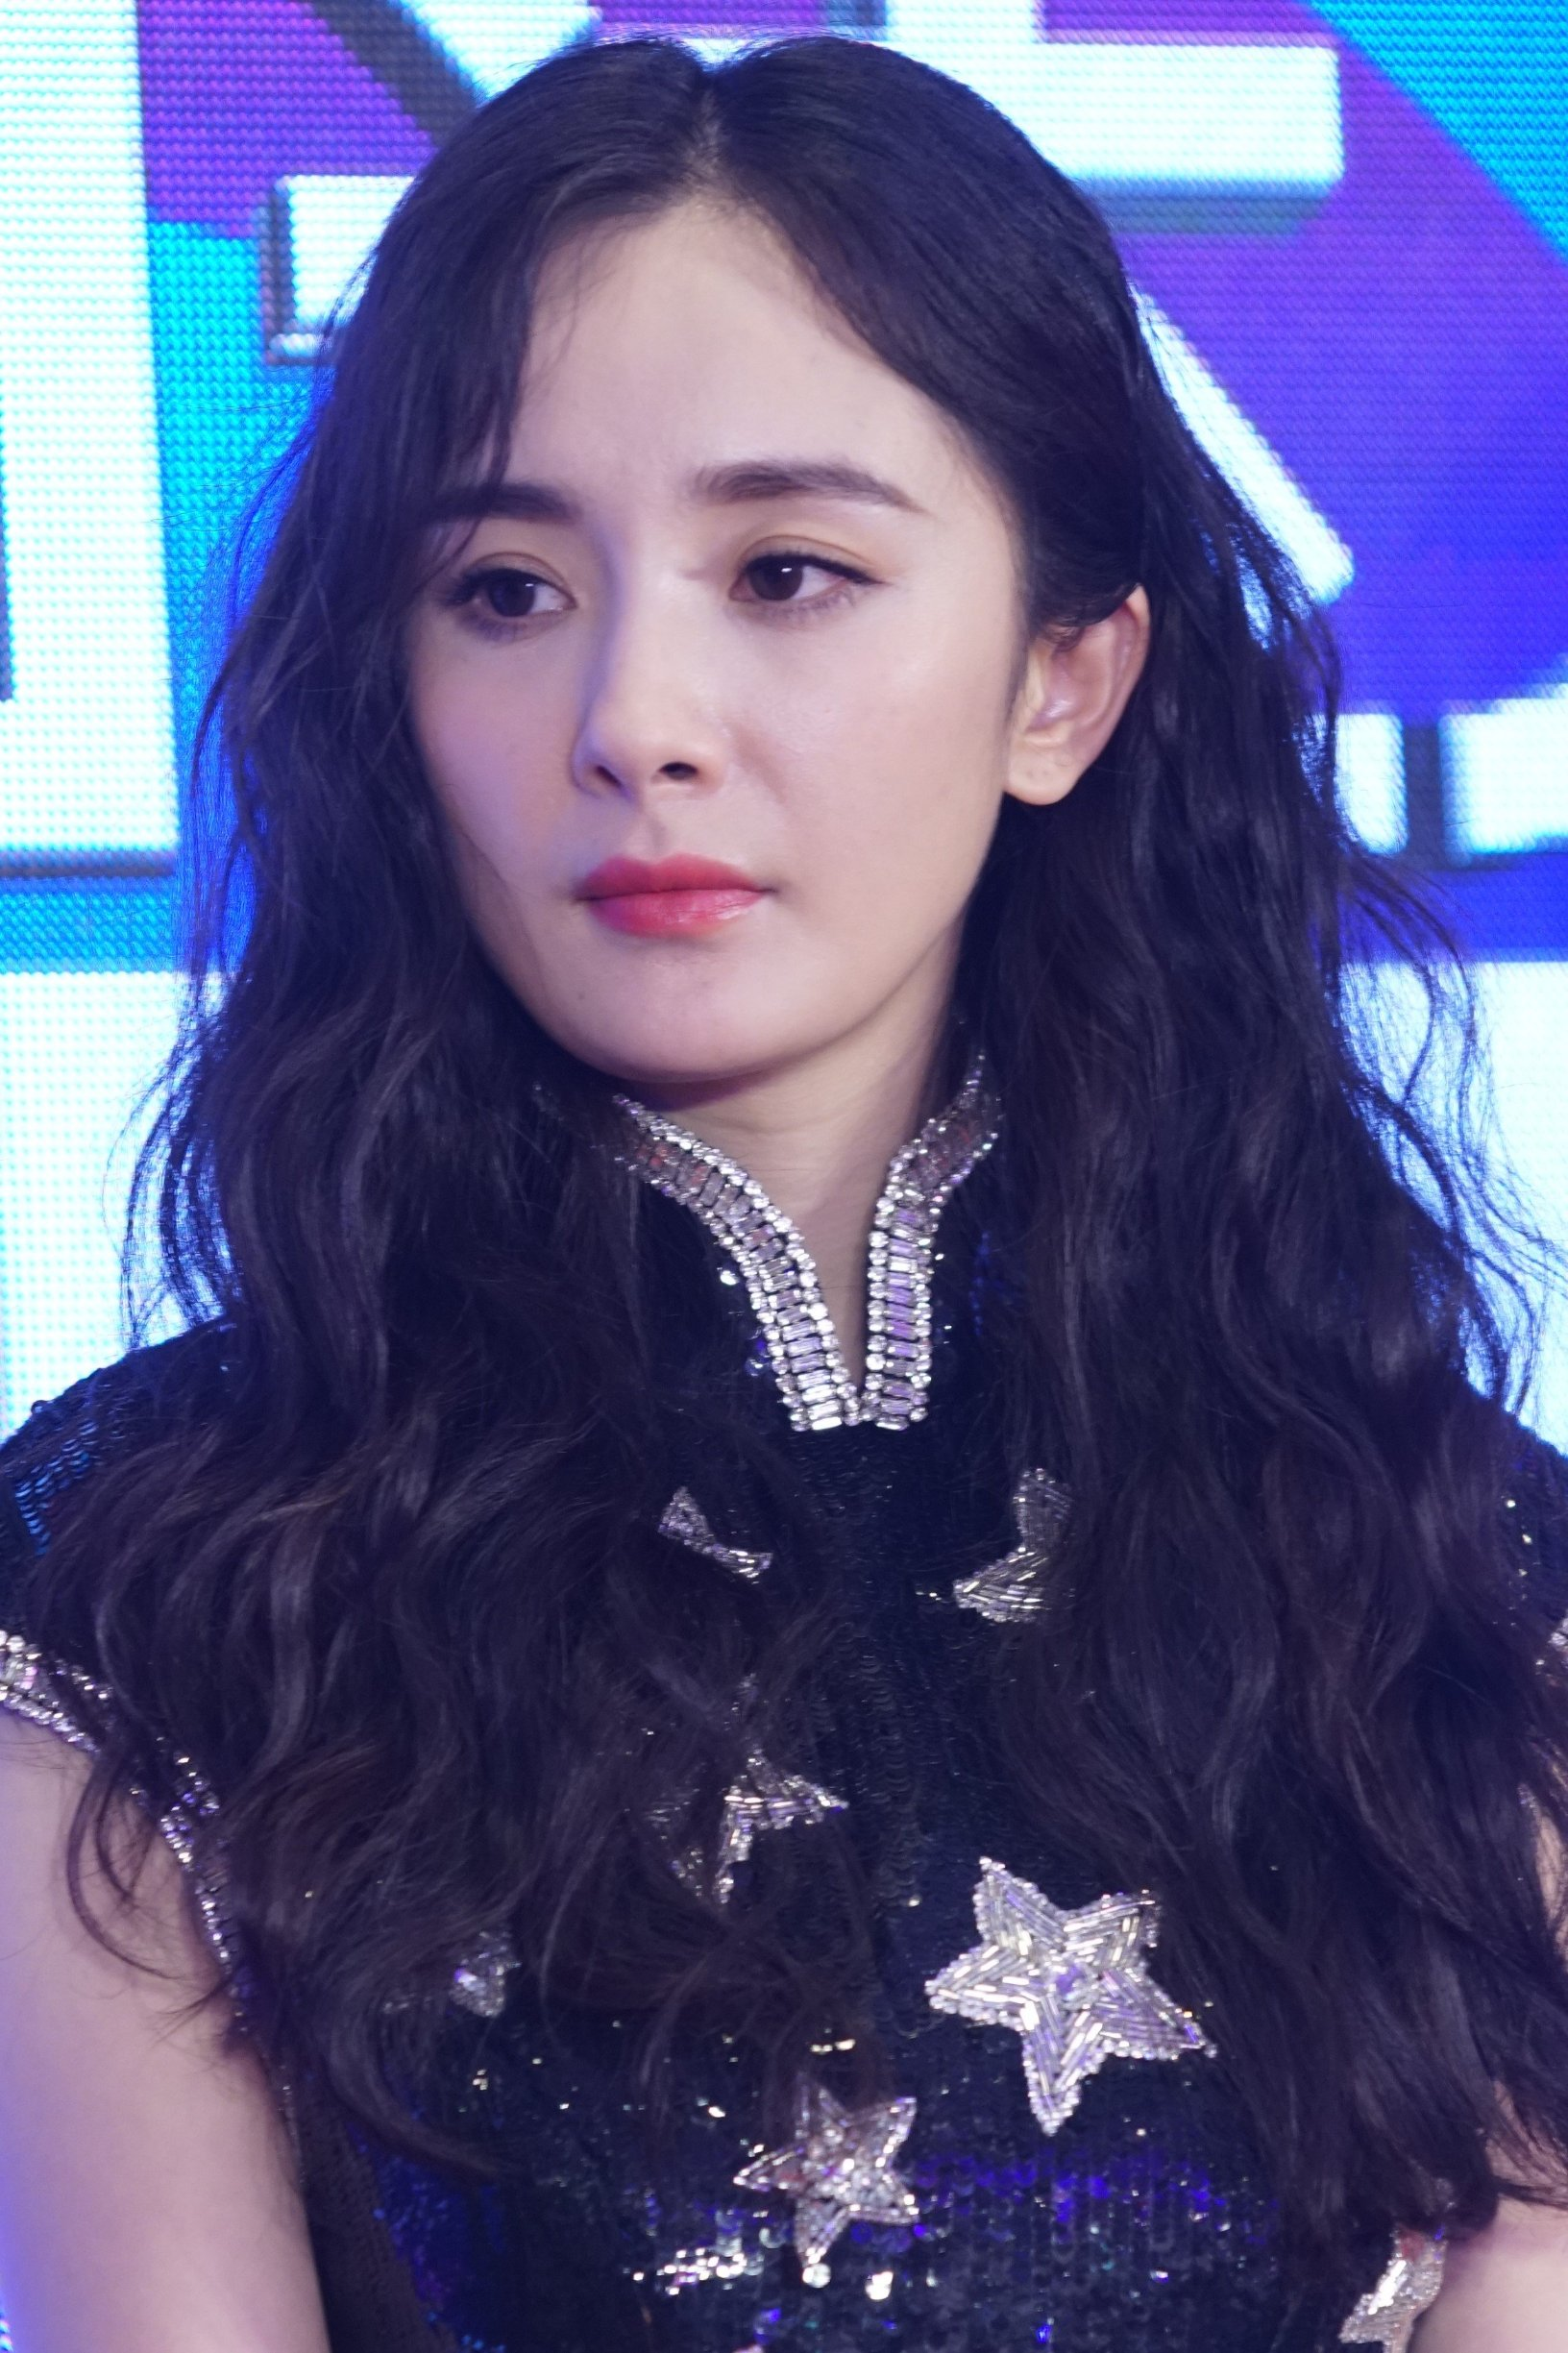 Chinese actress Yang Mi attends a press conference for reality show